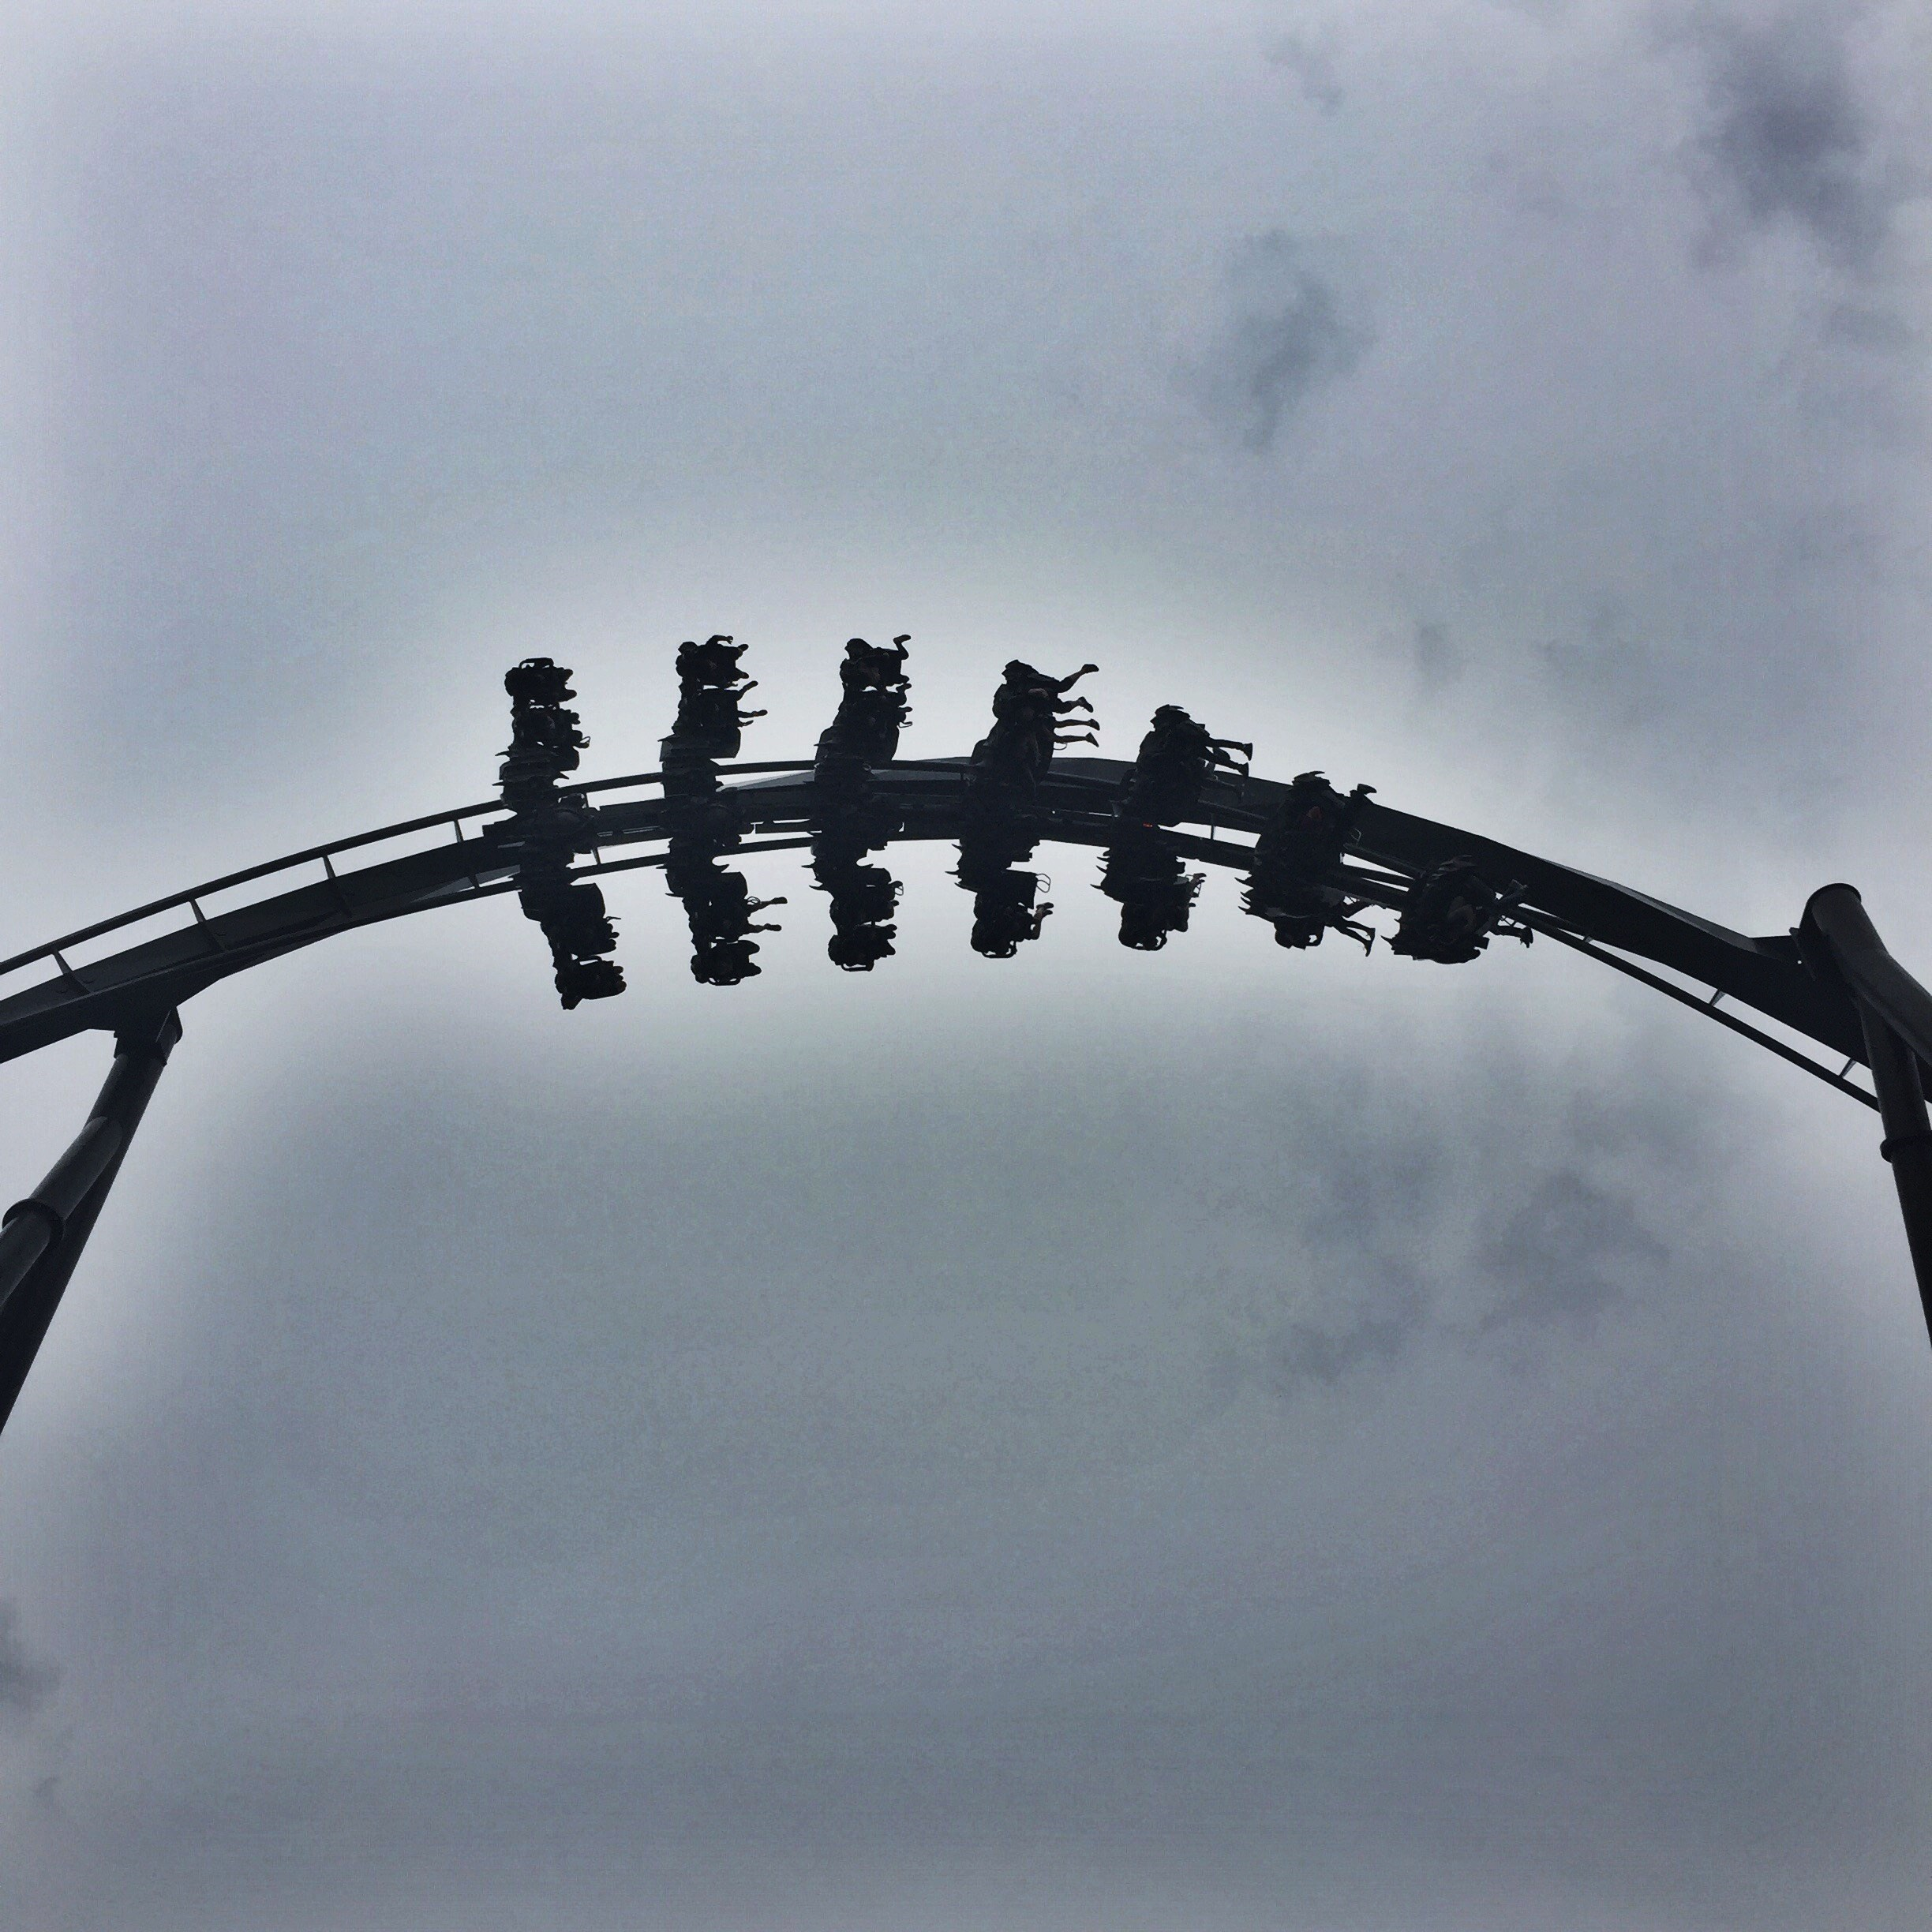 The Swarm Rollercoaster Surrounded By Clouds